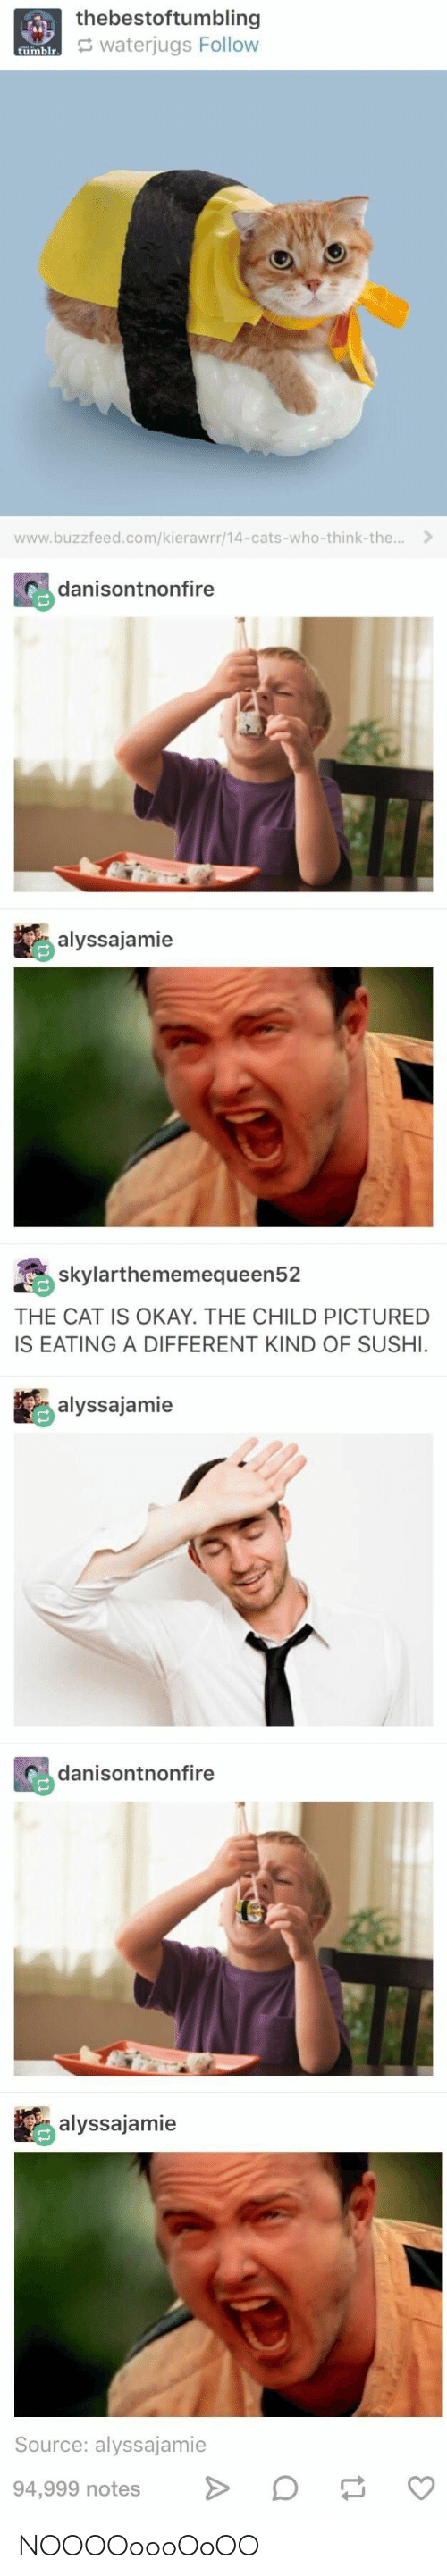 Cats, Tumblr, and Buzzfeed: thebestoftumbling  waterjugs Follow  tumblr  www.buzzfeed.com/kierawrr/14-cats-who-think-the...  danisontnonfire  alyssajamie  skylarthememequeen52  THE CAT IS OKAY. THE CHILD PICTURED  IS EATING A DIFFERENT KIND OF SUSHI.  alyssajamie  danisontnonfire  alyssajamie  Source: alyssajamie  94,999 notes  tl NOOOOoooOoOO